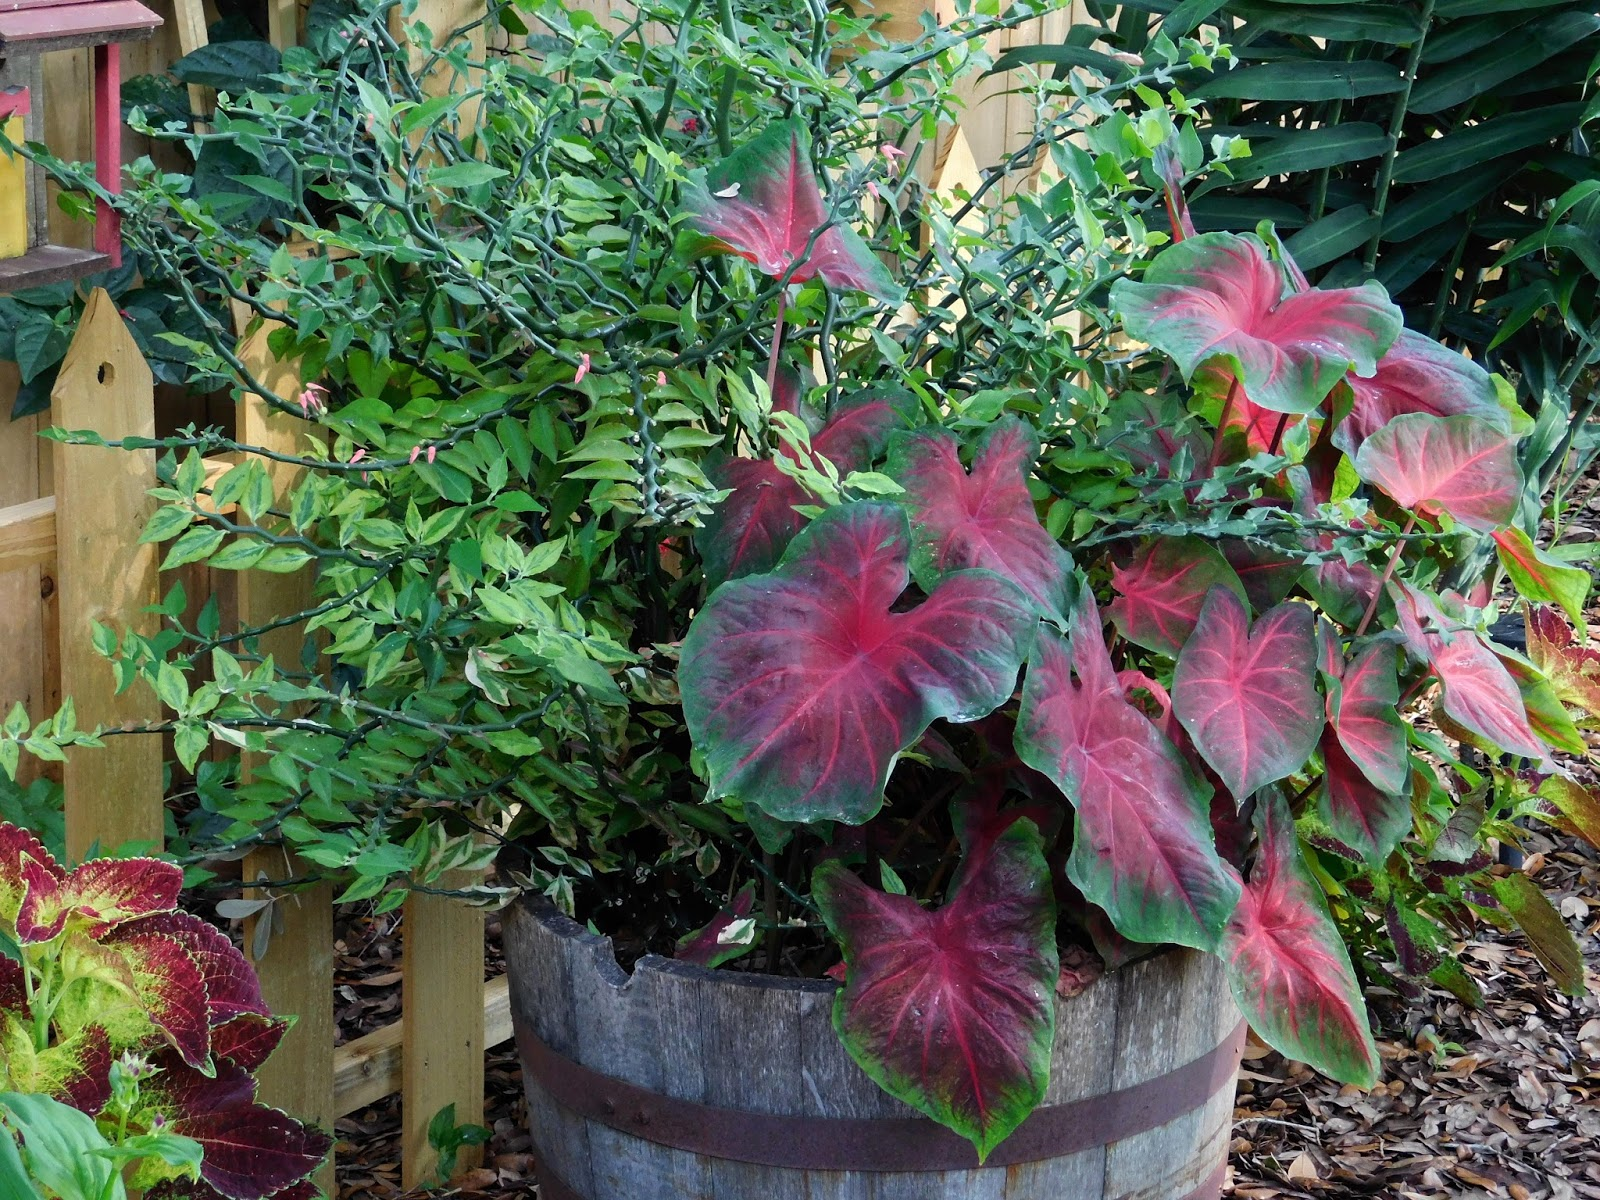 Tractor Seat Fuzzy Variegated Plants : Garden on fourth street shade gardens central florida